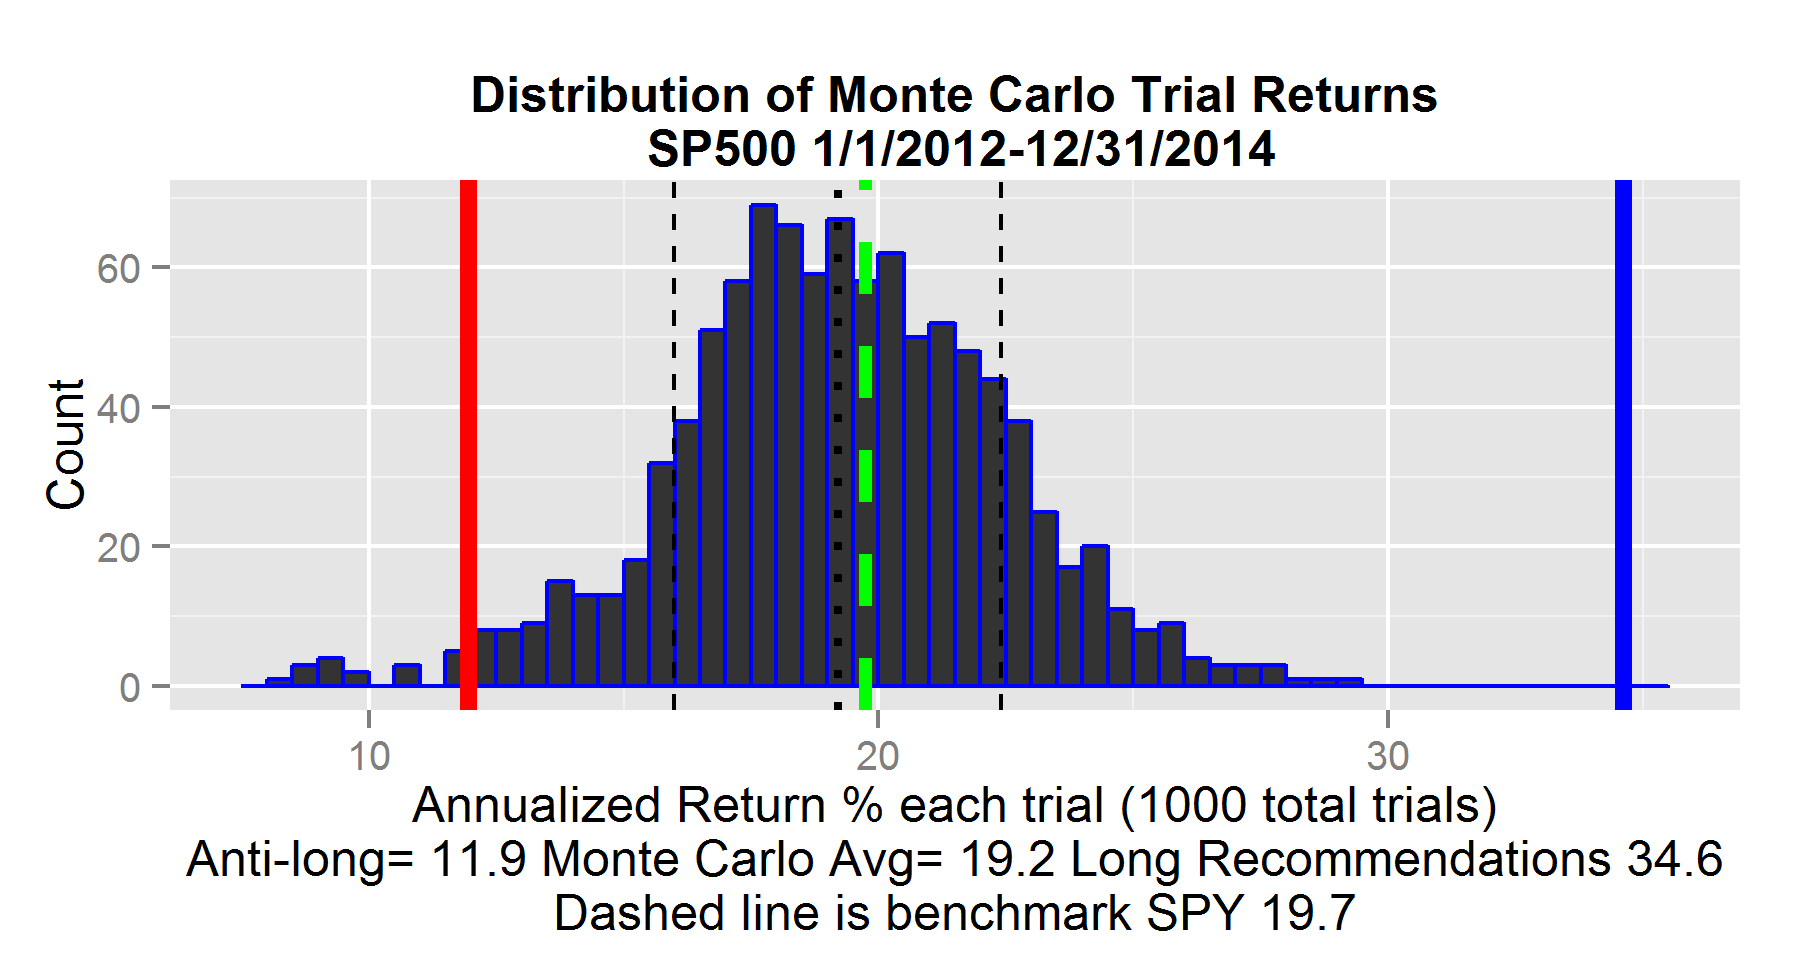 SP500 Monte Carlo simulation